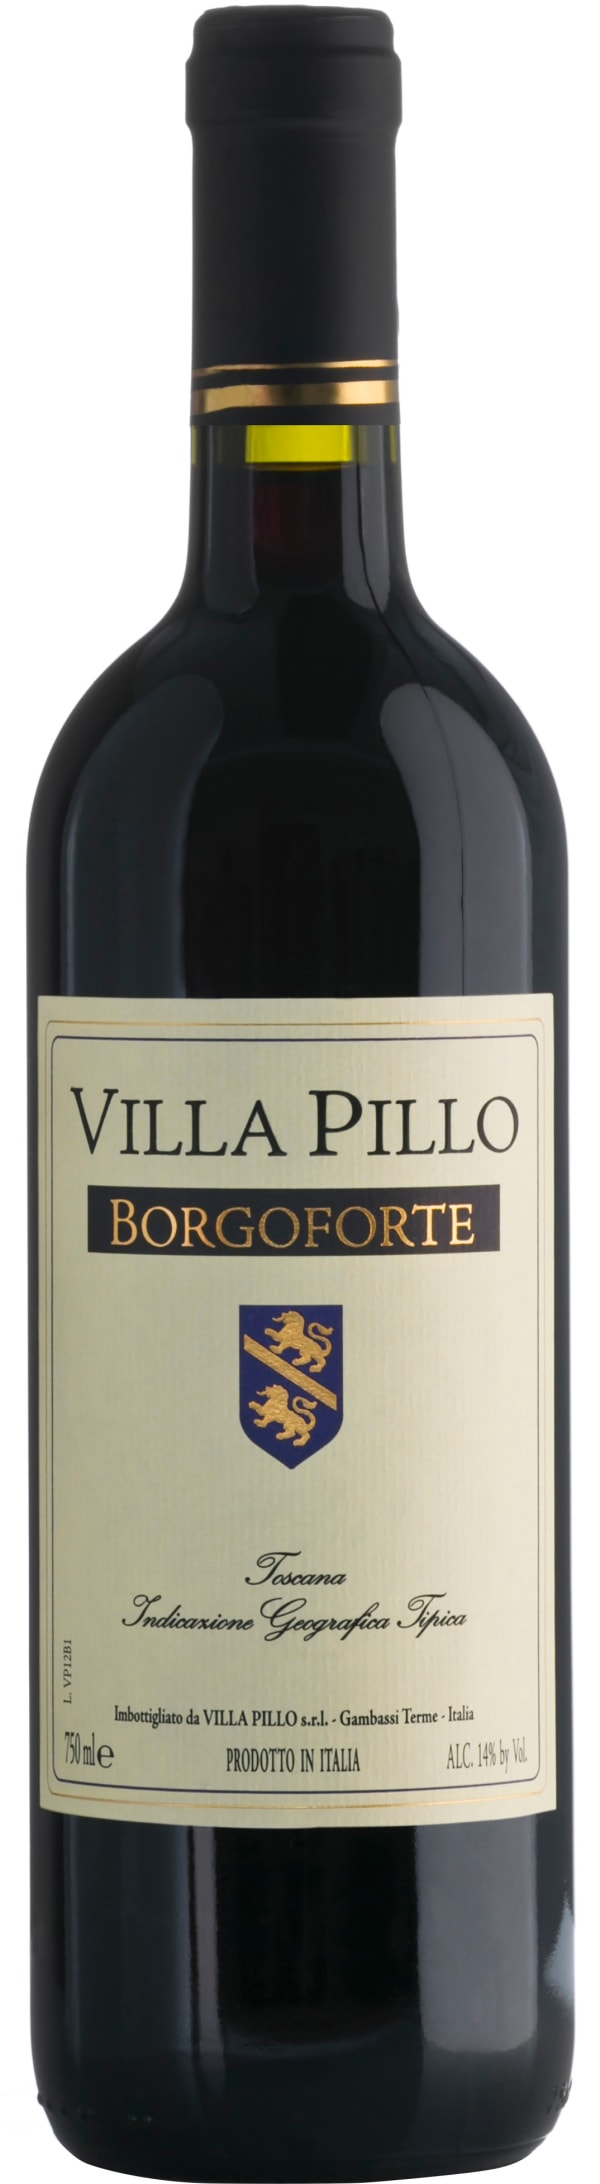 Villa Pillo Borgoforte